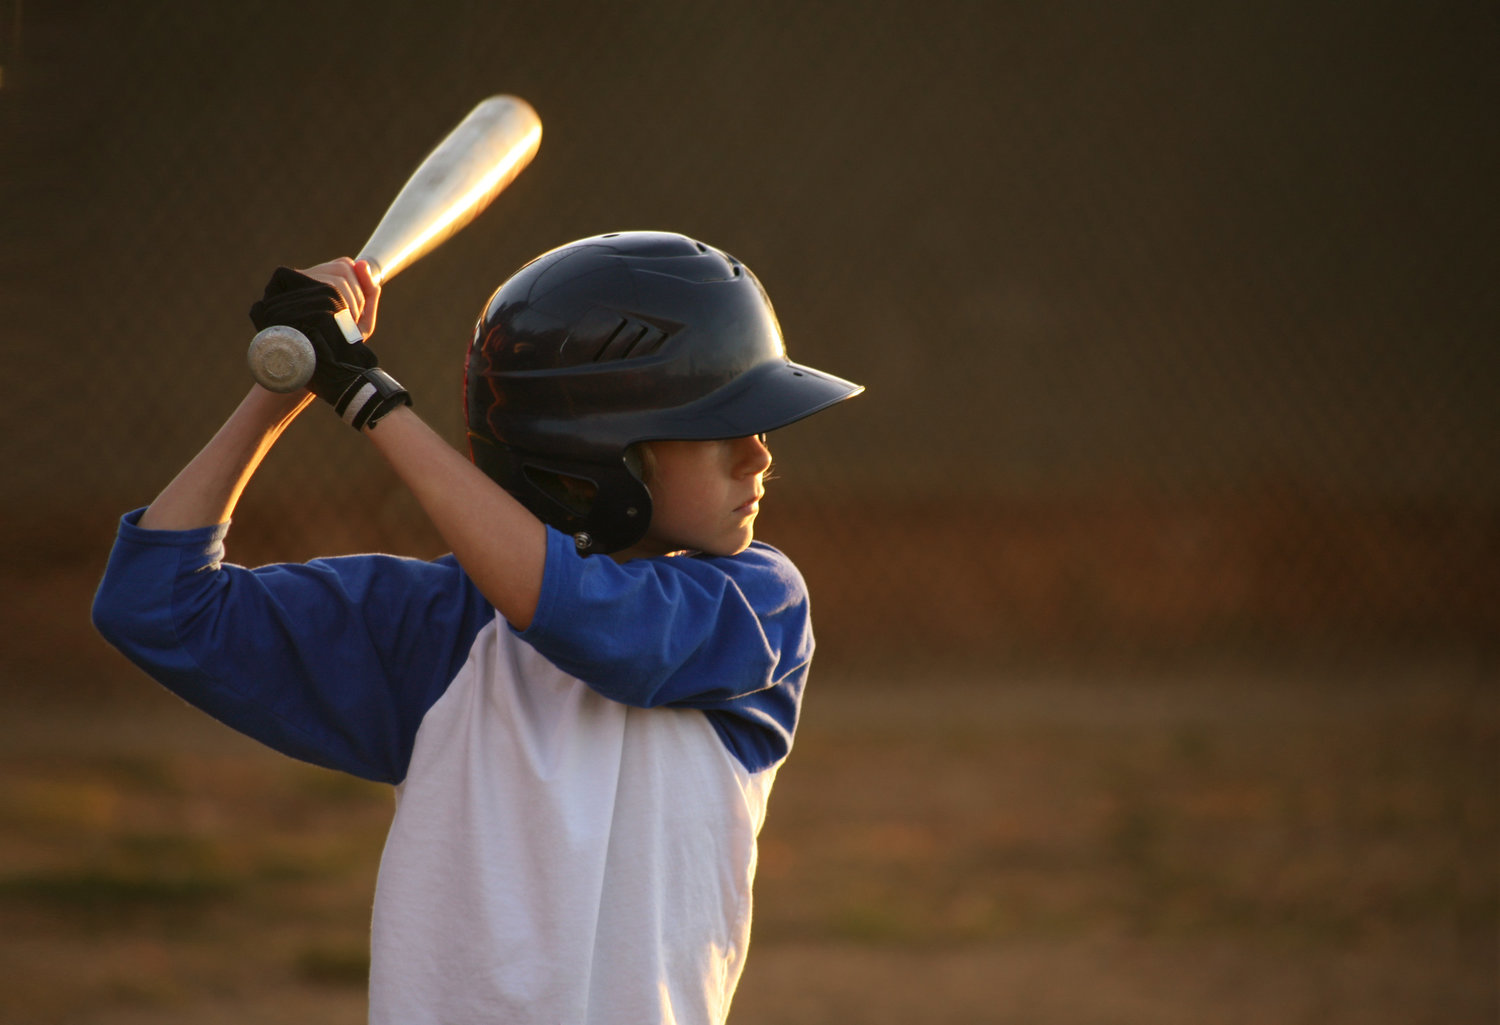 Baseball construction begins with local partnership — Youth Sports